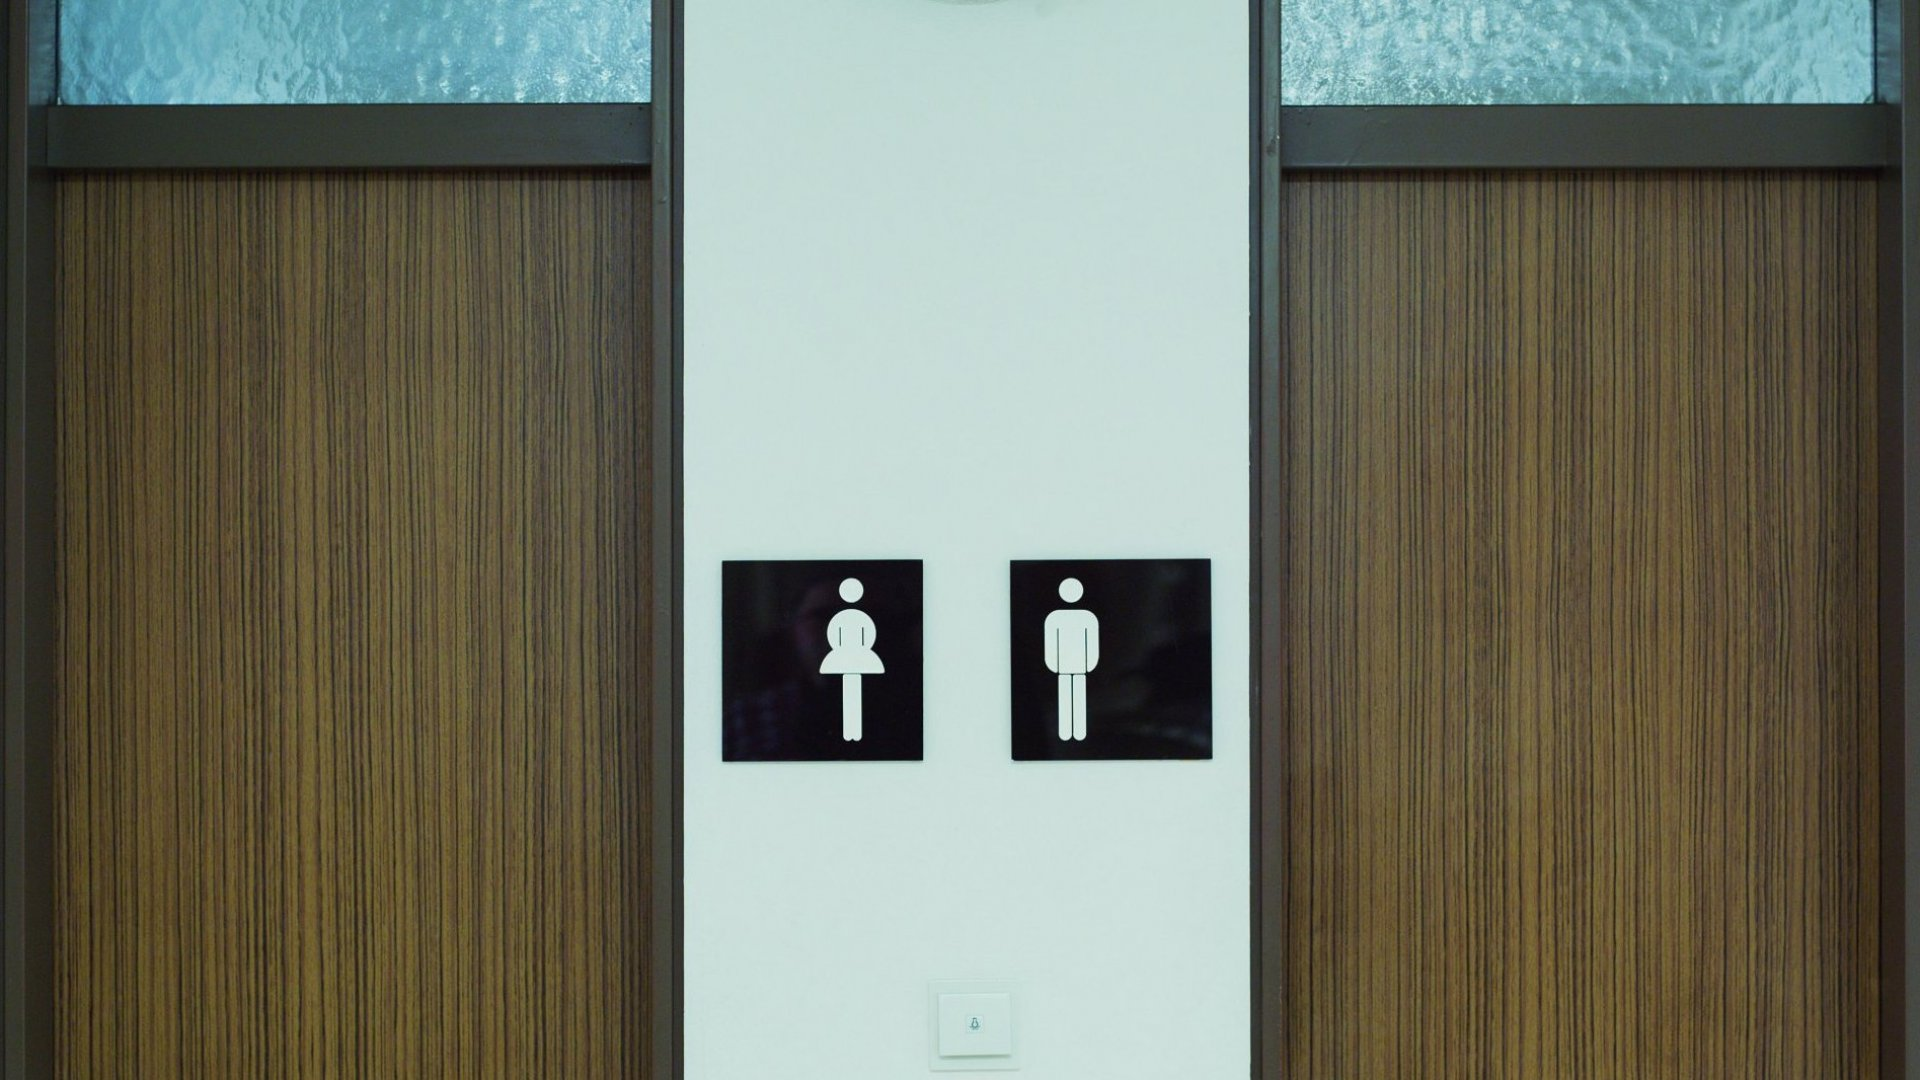 North Carolina Loses $3.1 Million in State Revenue Thanks to  Discriminatory 'Bathroom Bill'